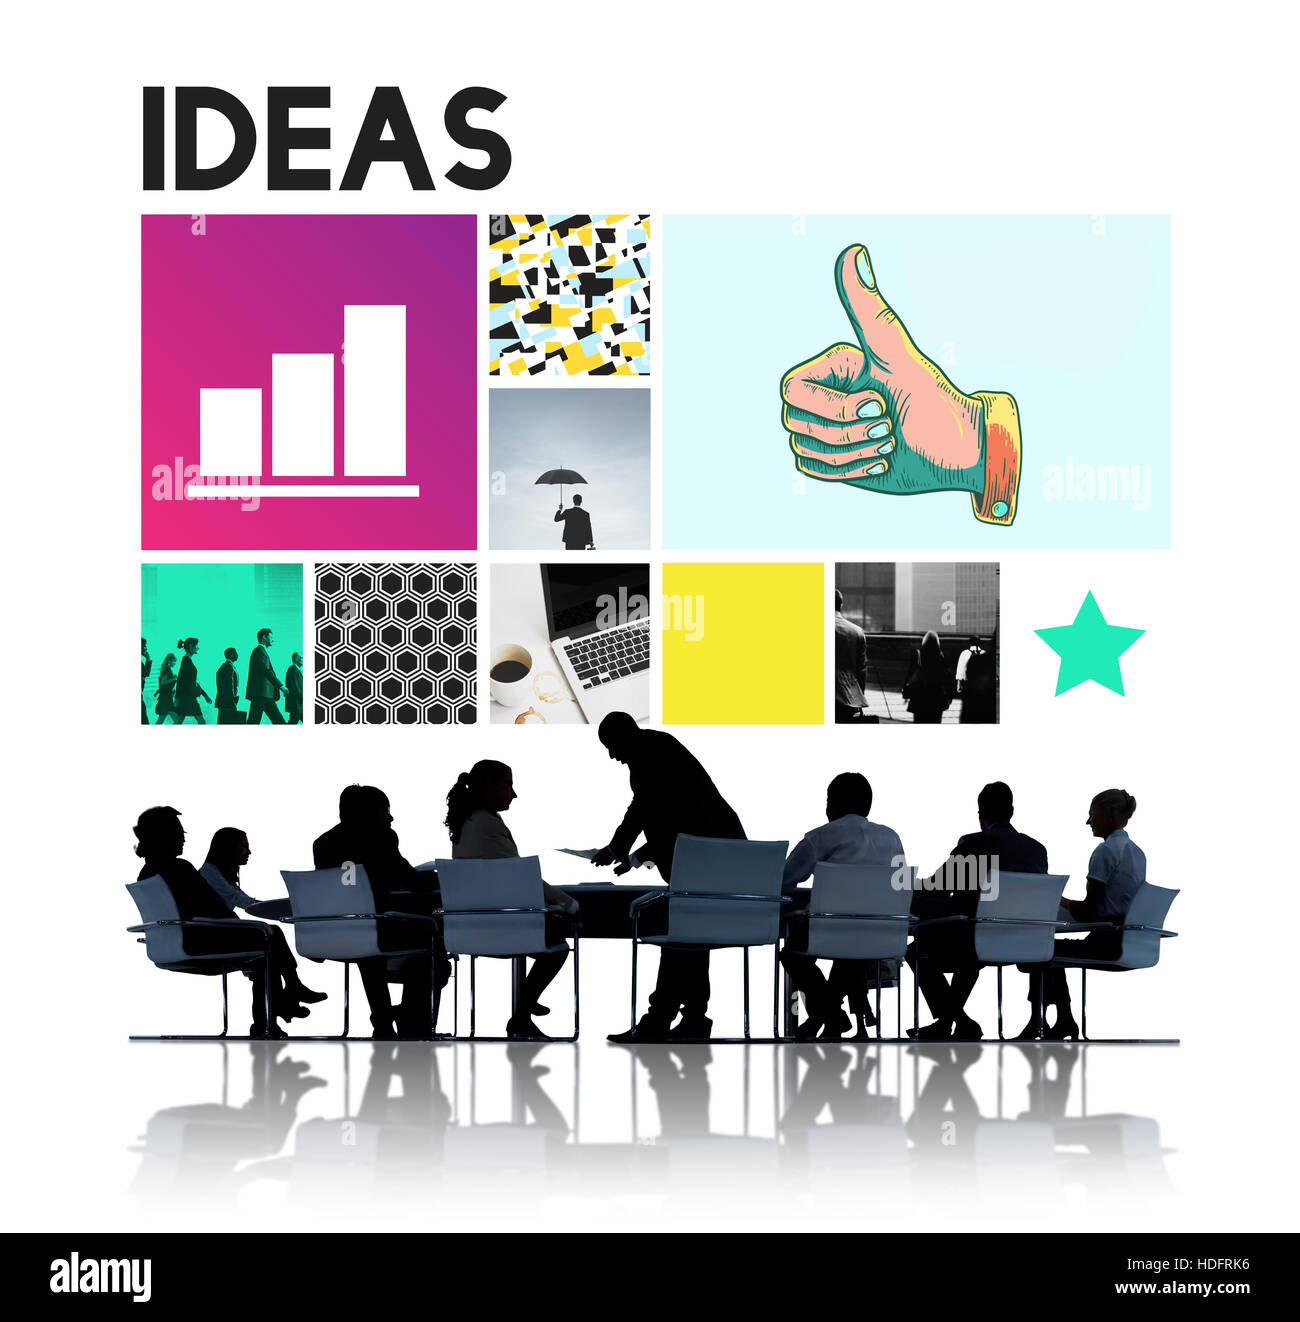 Ideas Thumps up Mission Strategy Concept - Stock Image